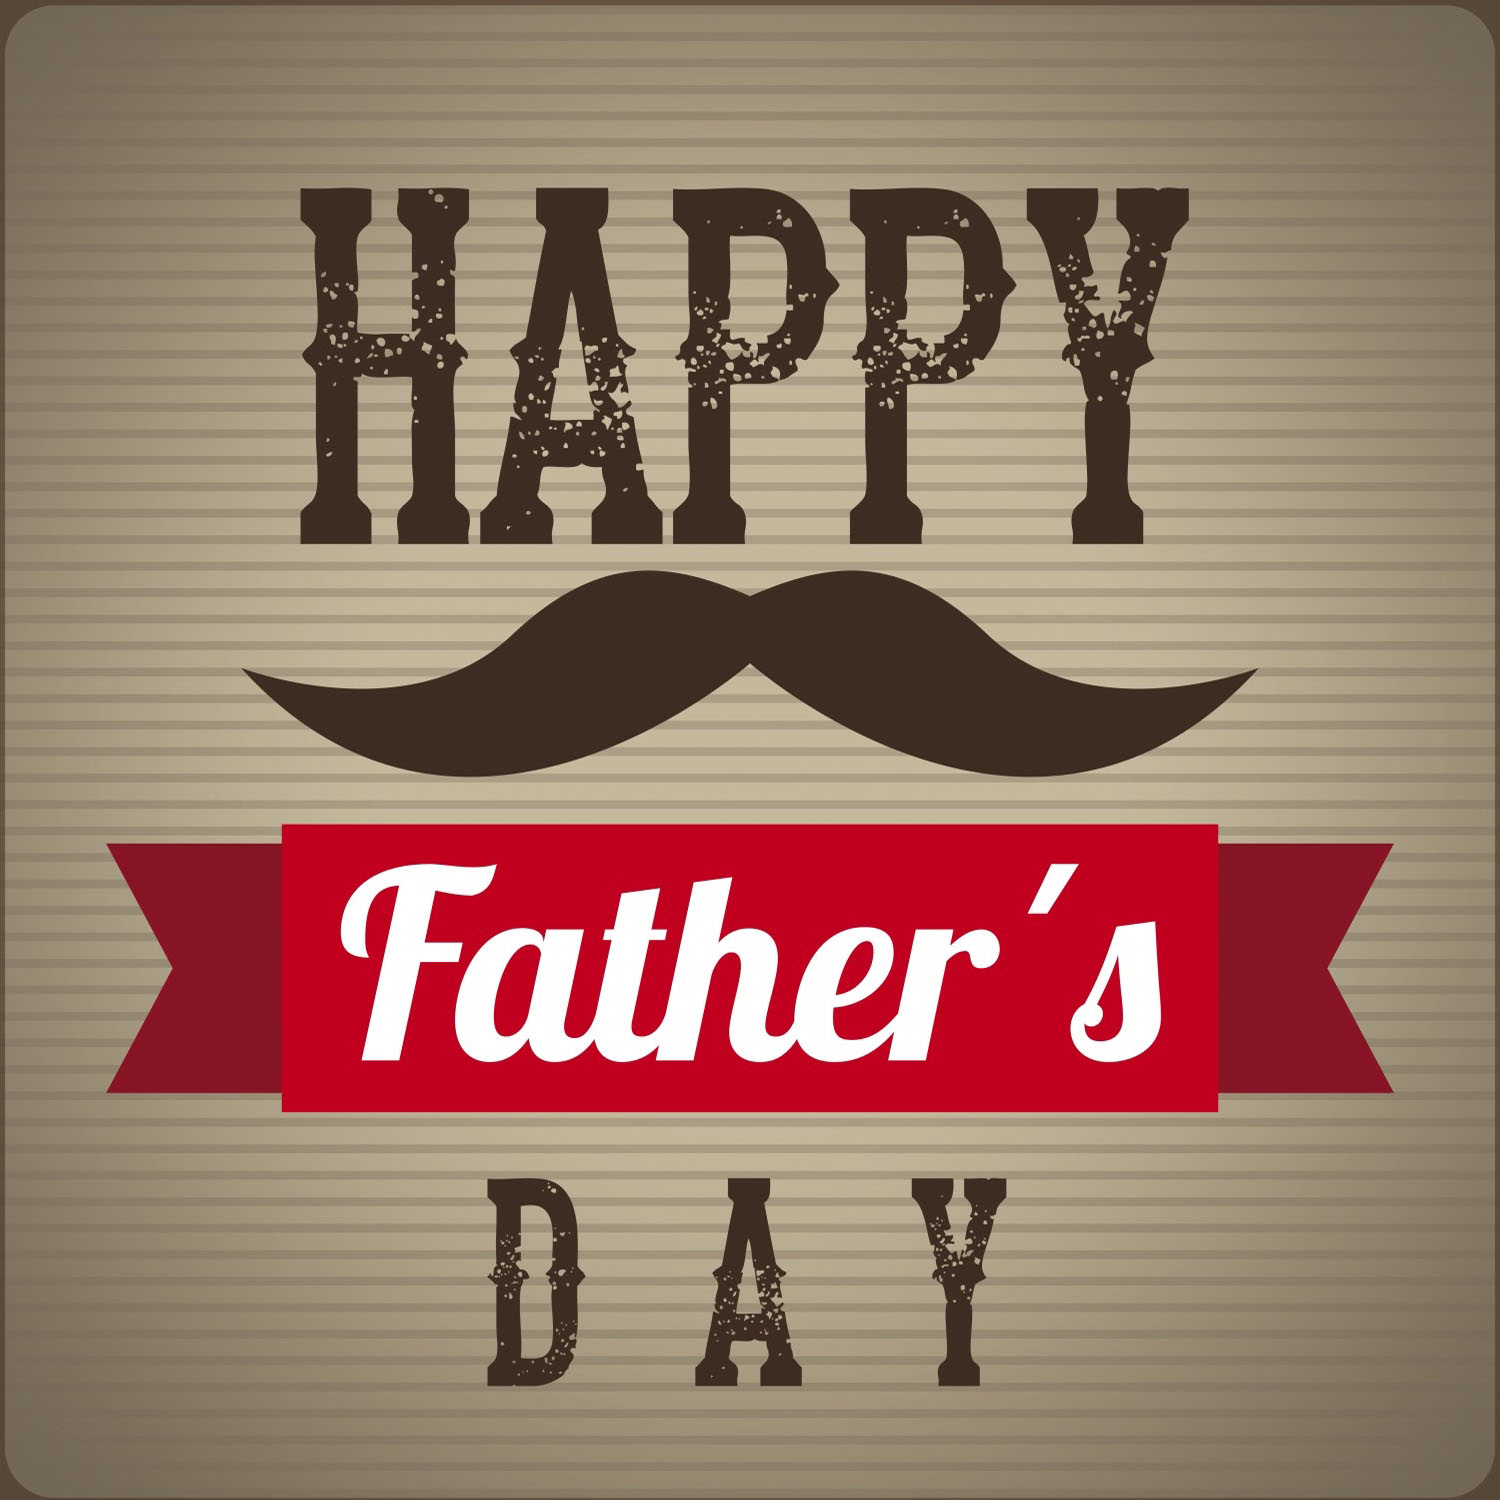 Fathers day 2018 image